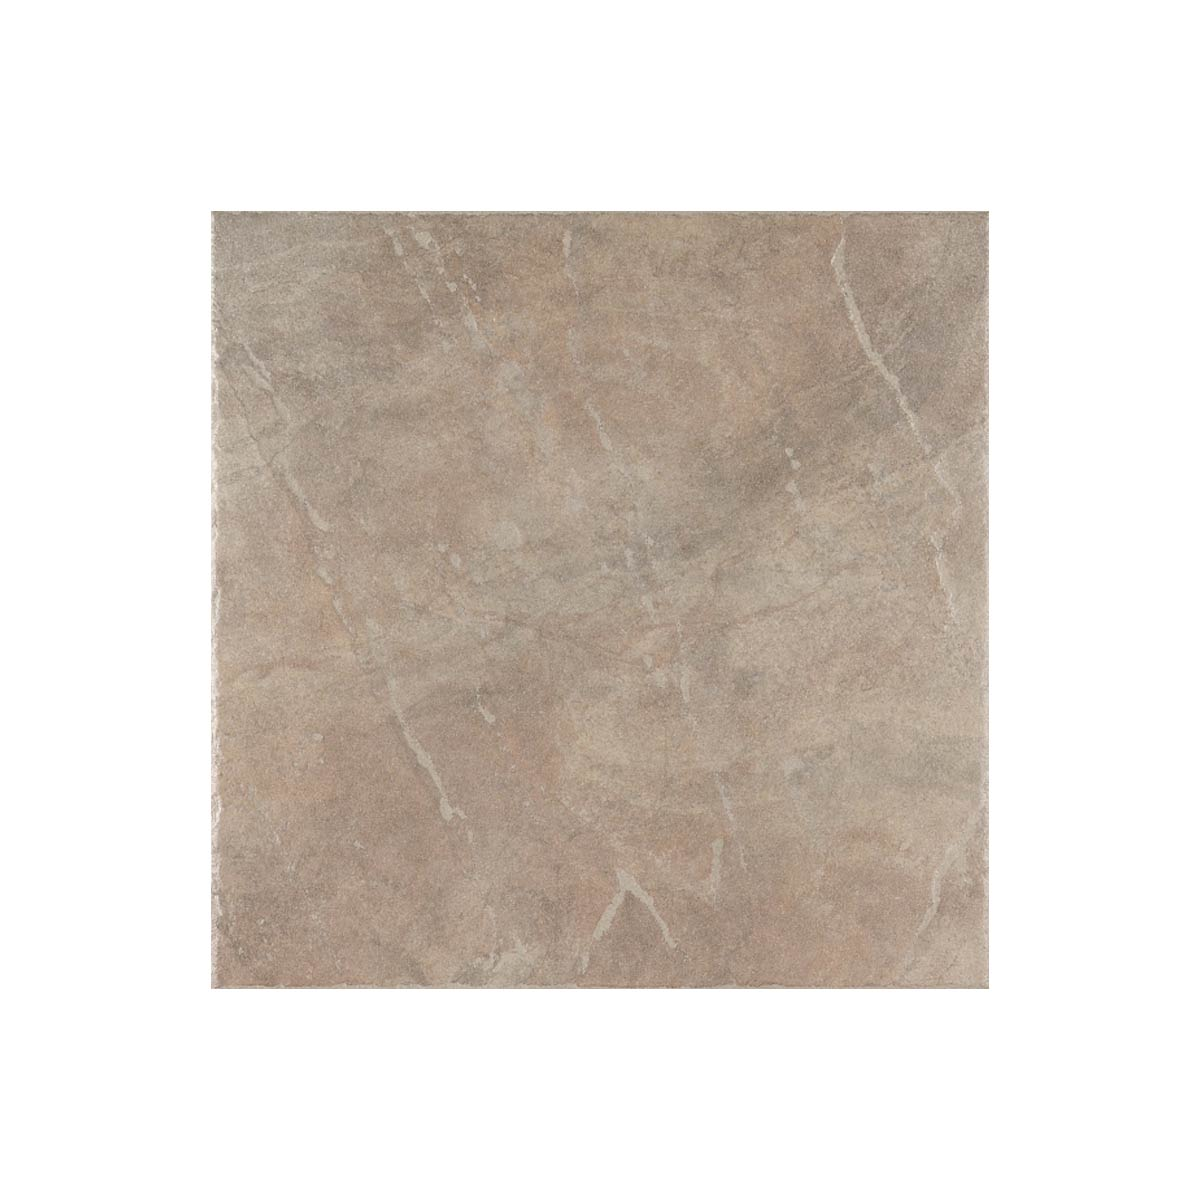 Piso Pizarra Natural Multicolor 45814-279 (Cj1.89) 45.8X45.8